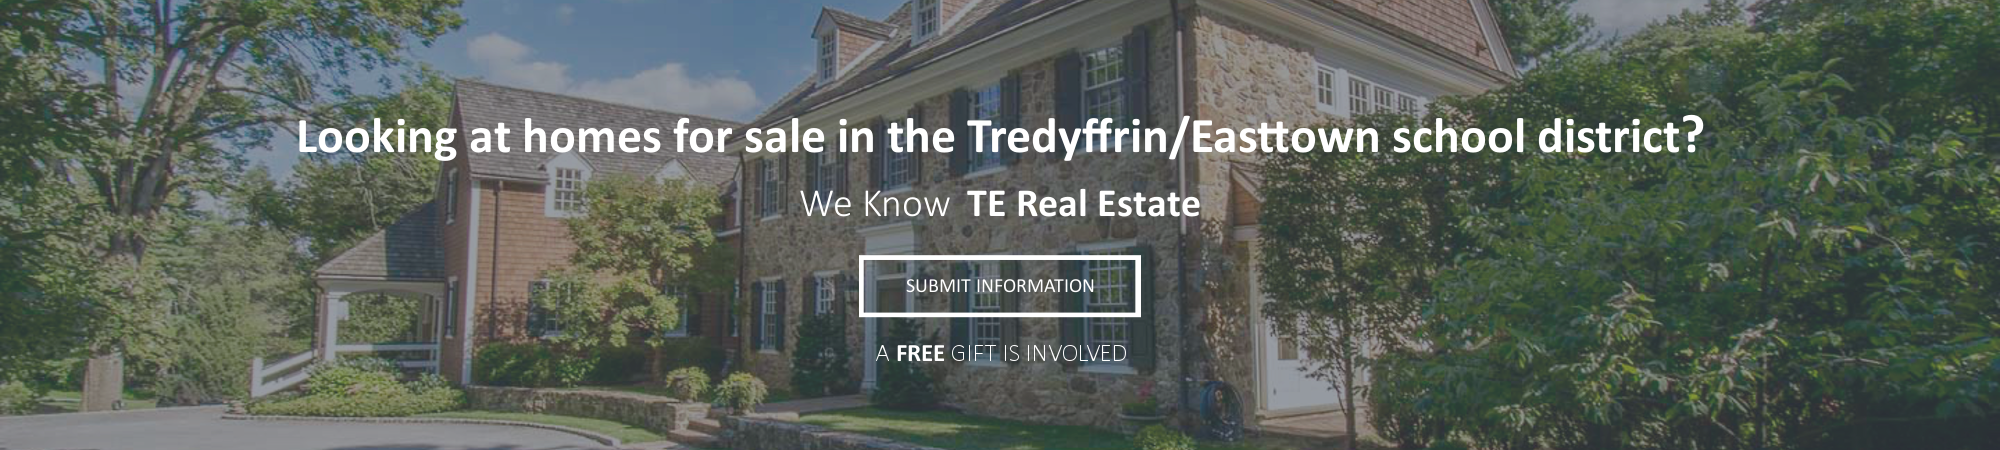 homes for sale in tredyffrin-easttown school district